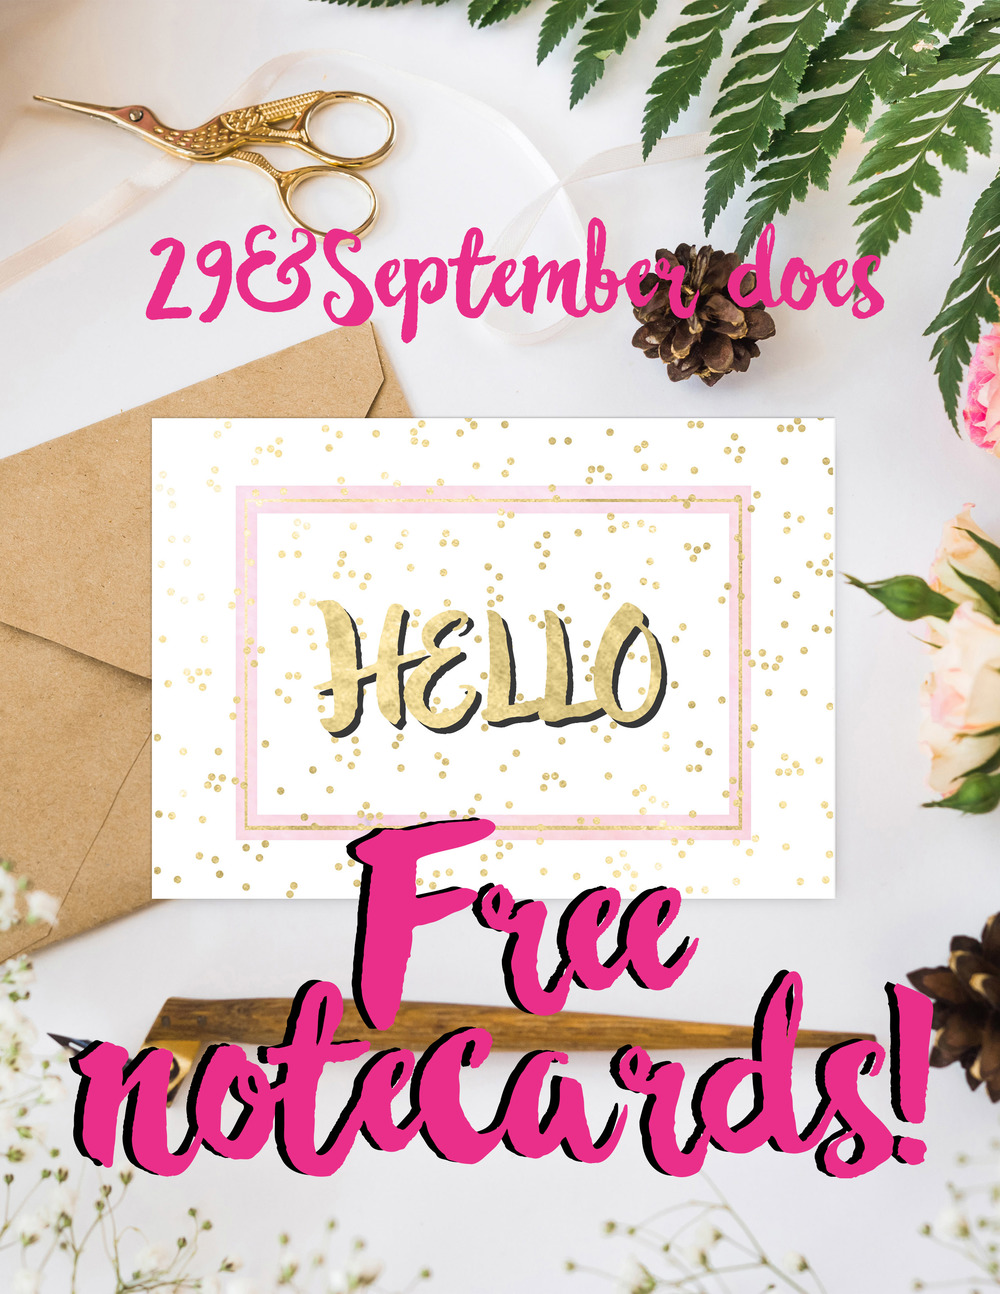 Free notecards from 29&September